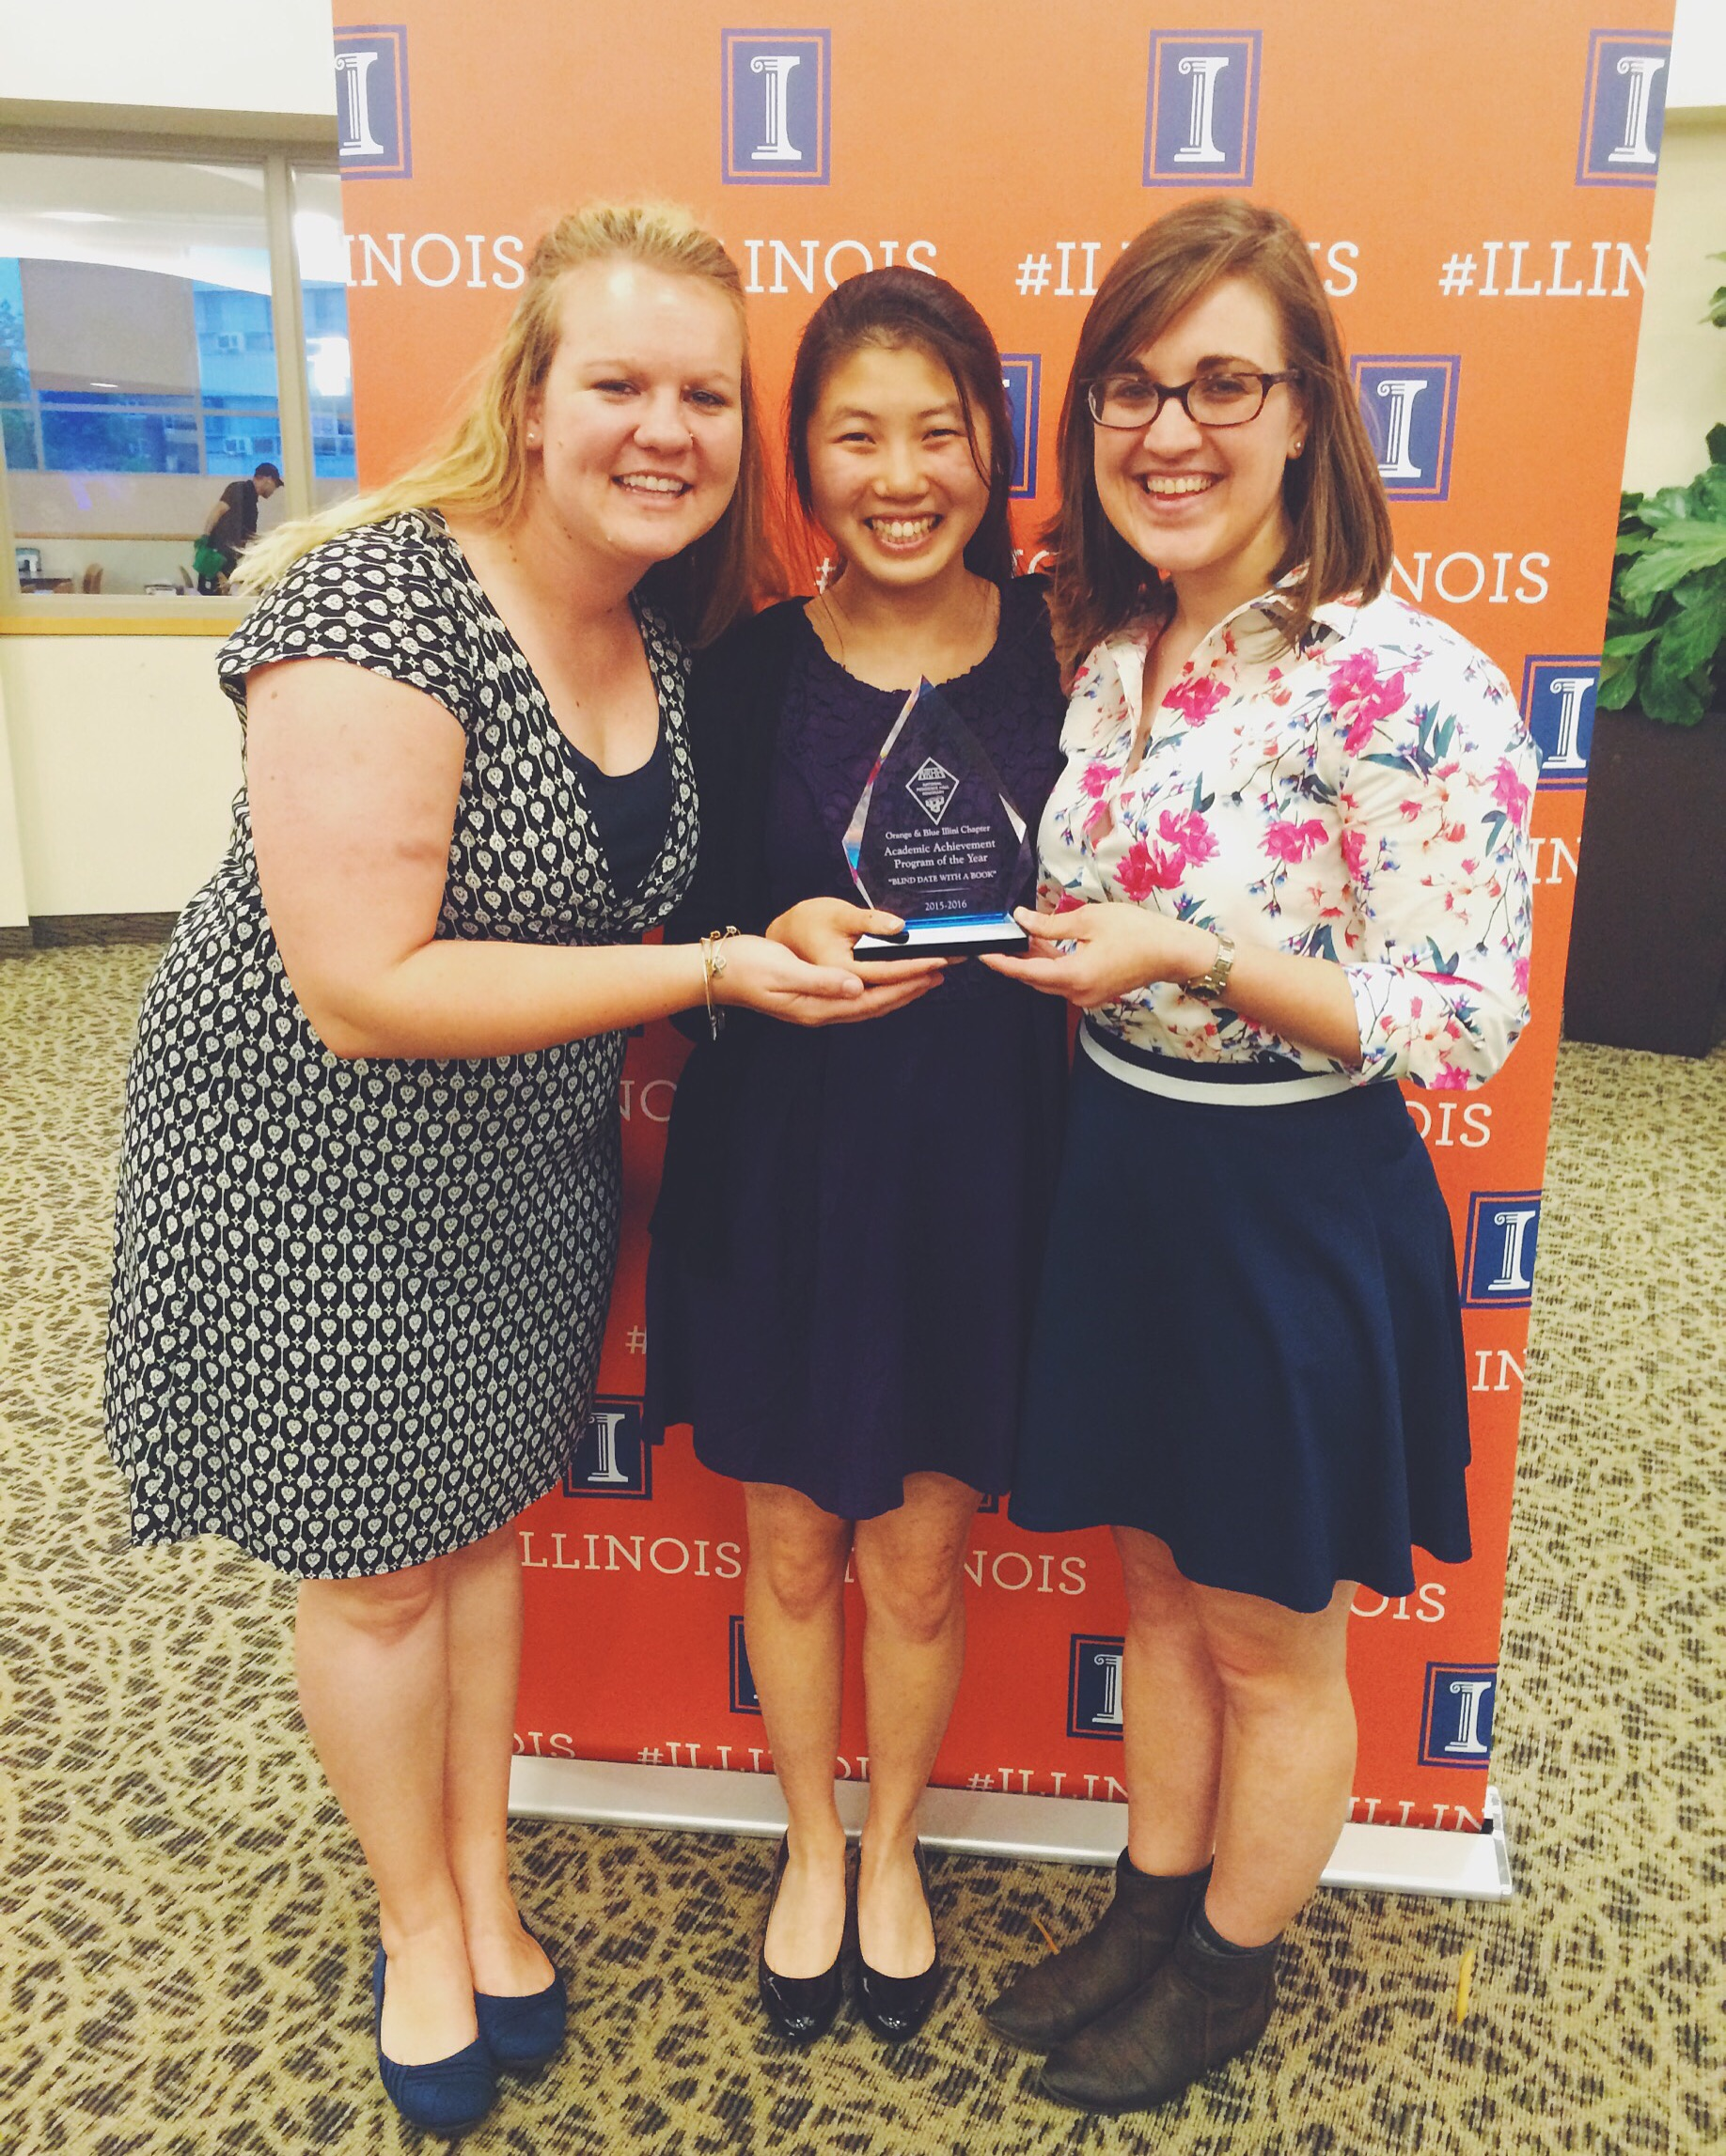 The infamous award! From L to R: Caitlin, a good friend and Resident Director, and one of our RAs in FAR.